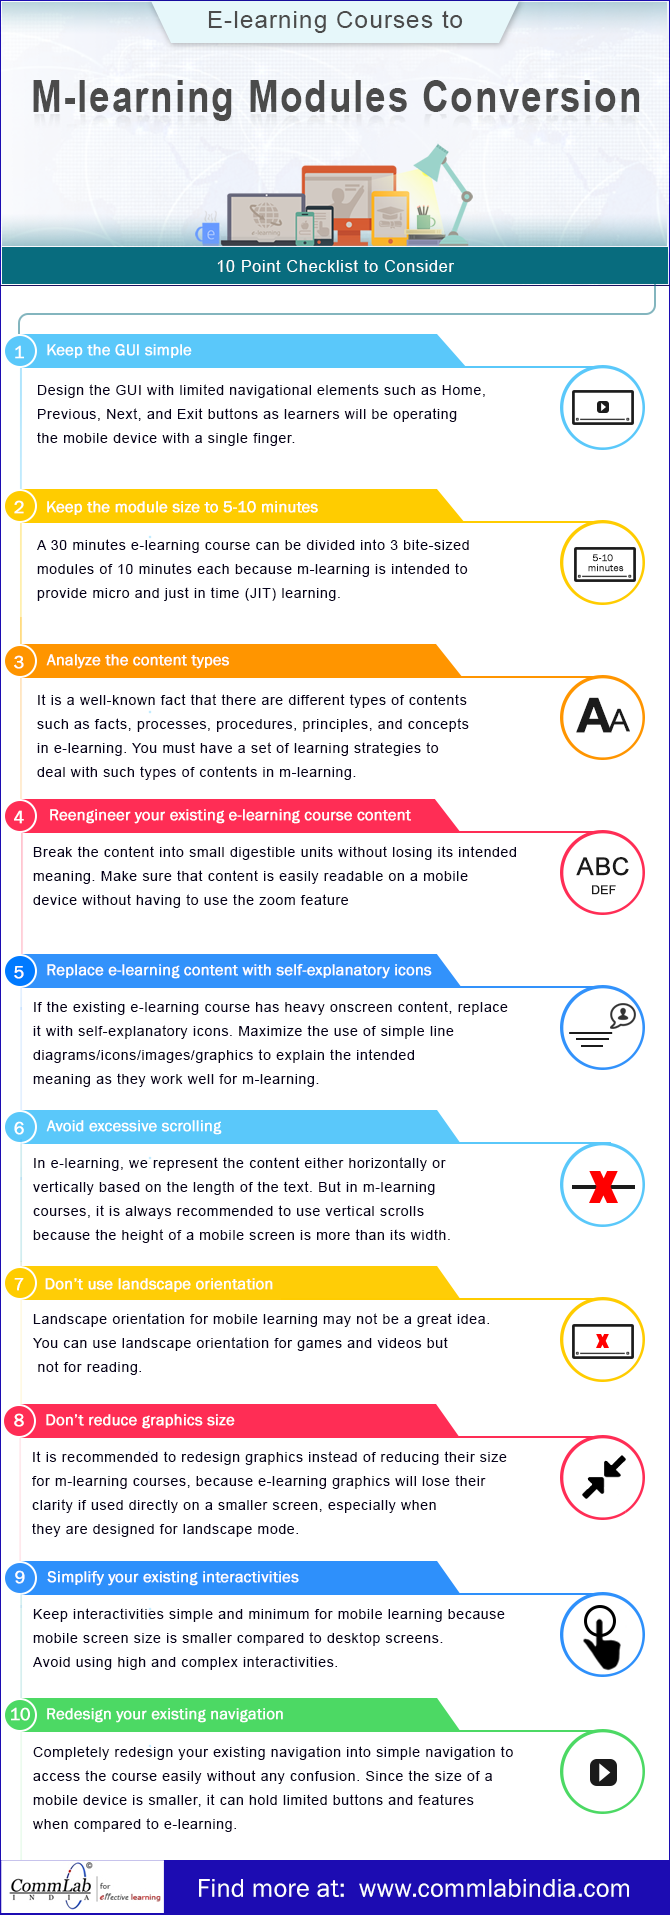 Making E-learning Content Mobile Compatible - A Few Aspects to Consider [Infographic]